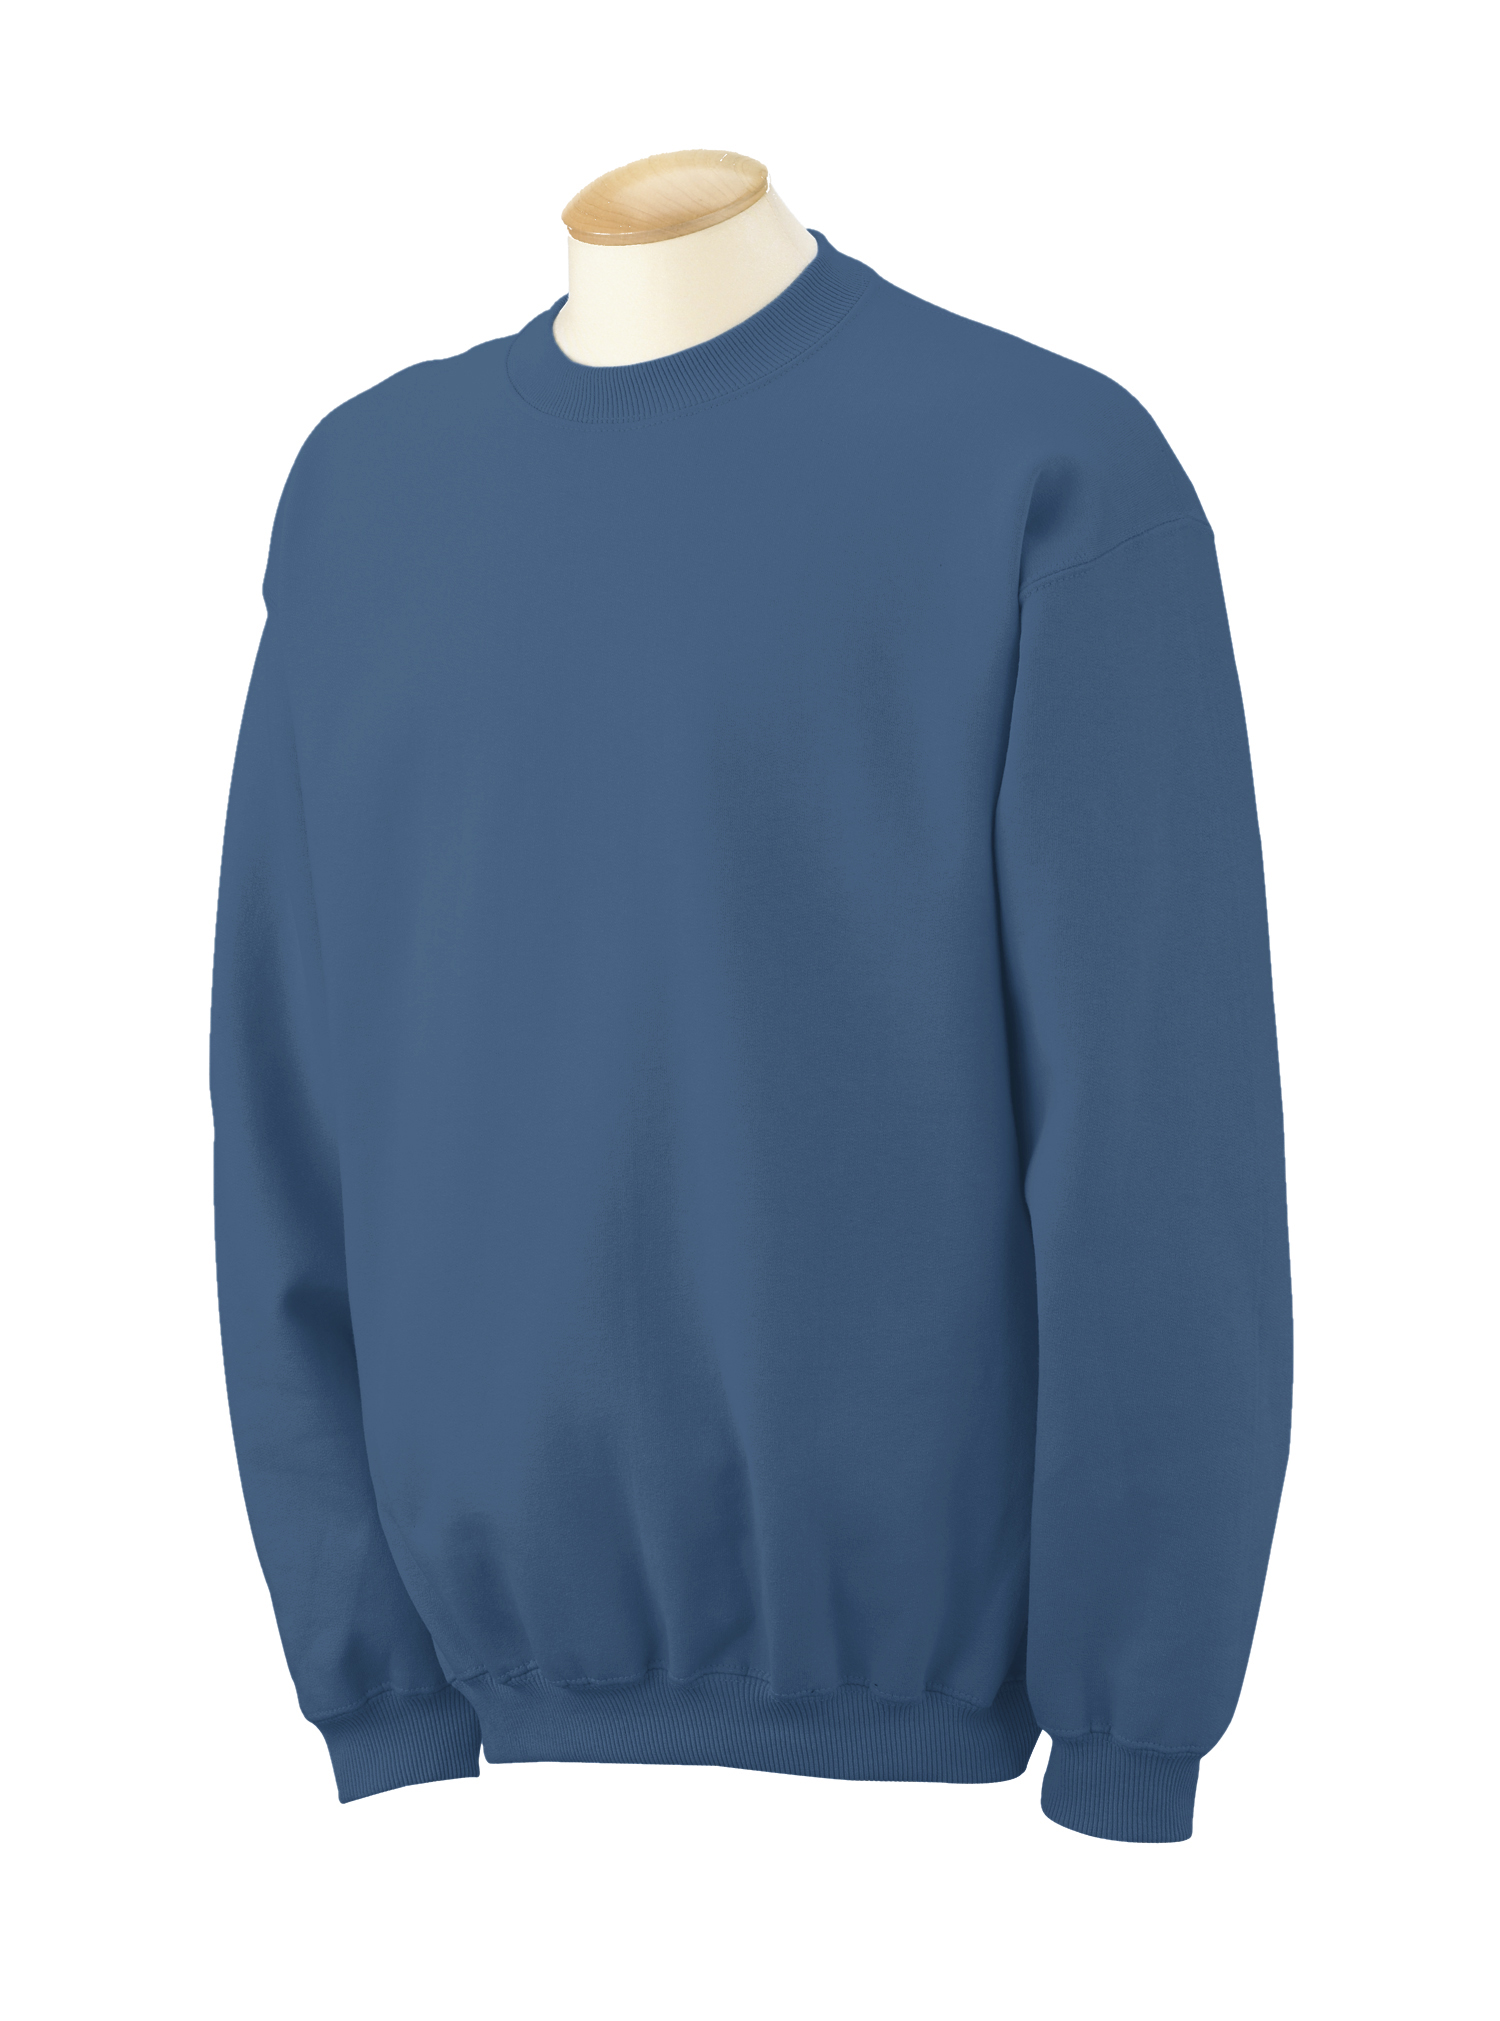 Gildan G900 9.5 oz. Ultra Cotton80/20 Fleece Crew